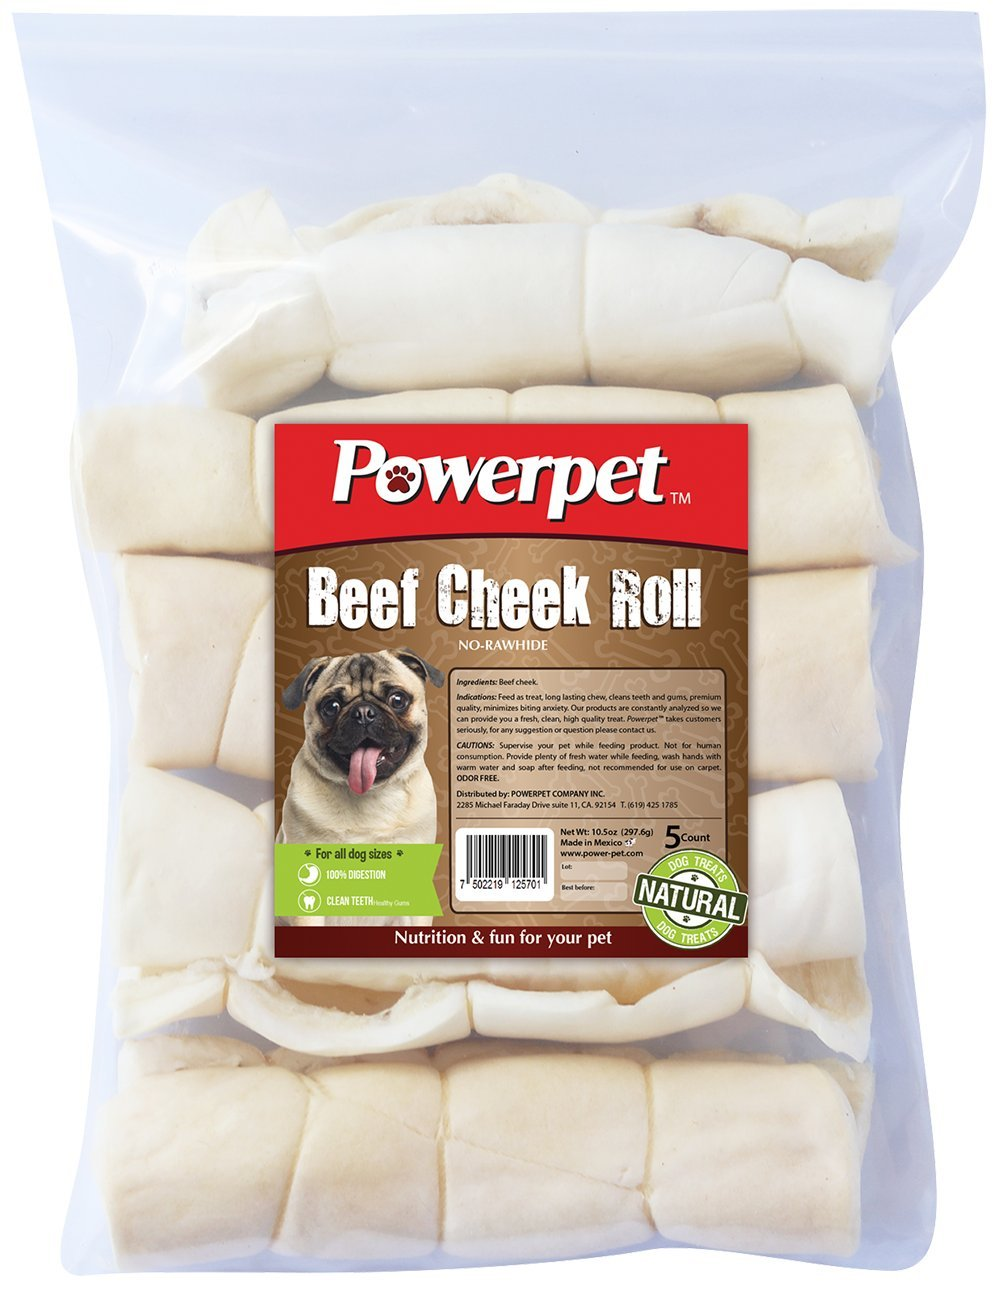 Powerpet: Beef Cheek Rolls - Natural Dog Chews - Helps Improve Dental Hygiene - 100% Natural & Highly Digestible - High in Protein, Low in Fat - Beef Cheek Treats - No Rawhide Used